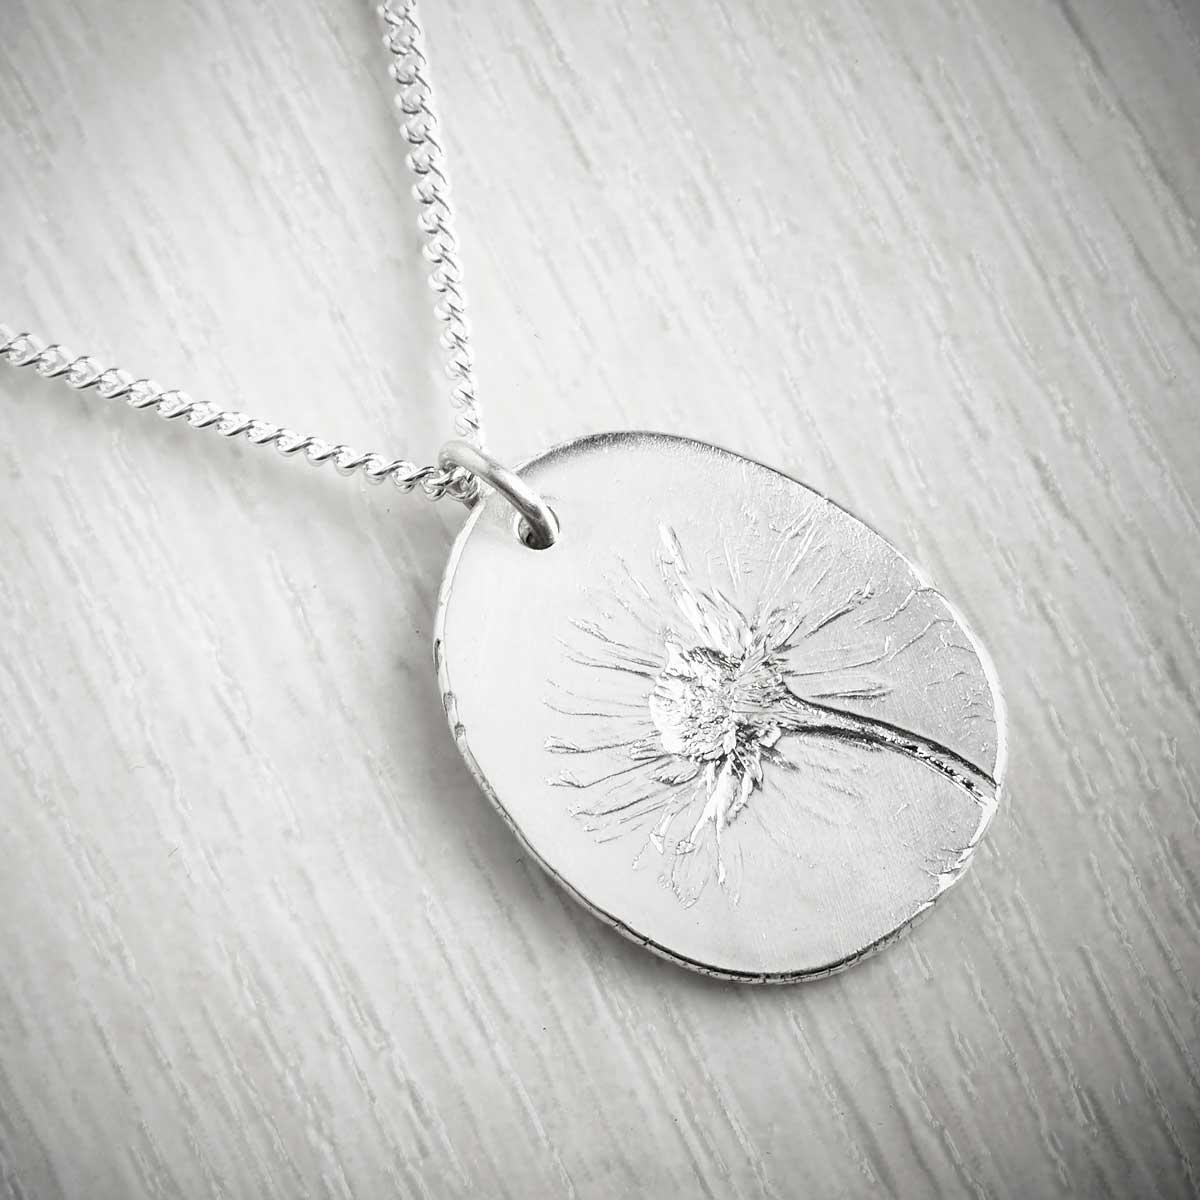 Daisy April Fossil Pendant by Becca Macdonald. Image property of THE JEWELLERY MAKERS.